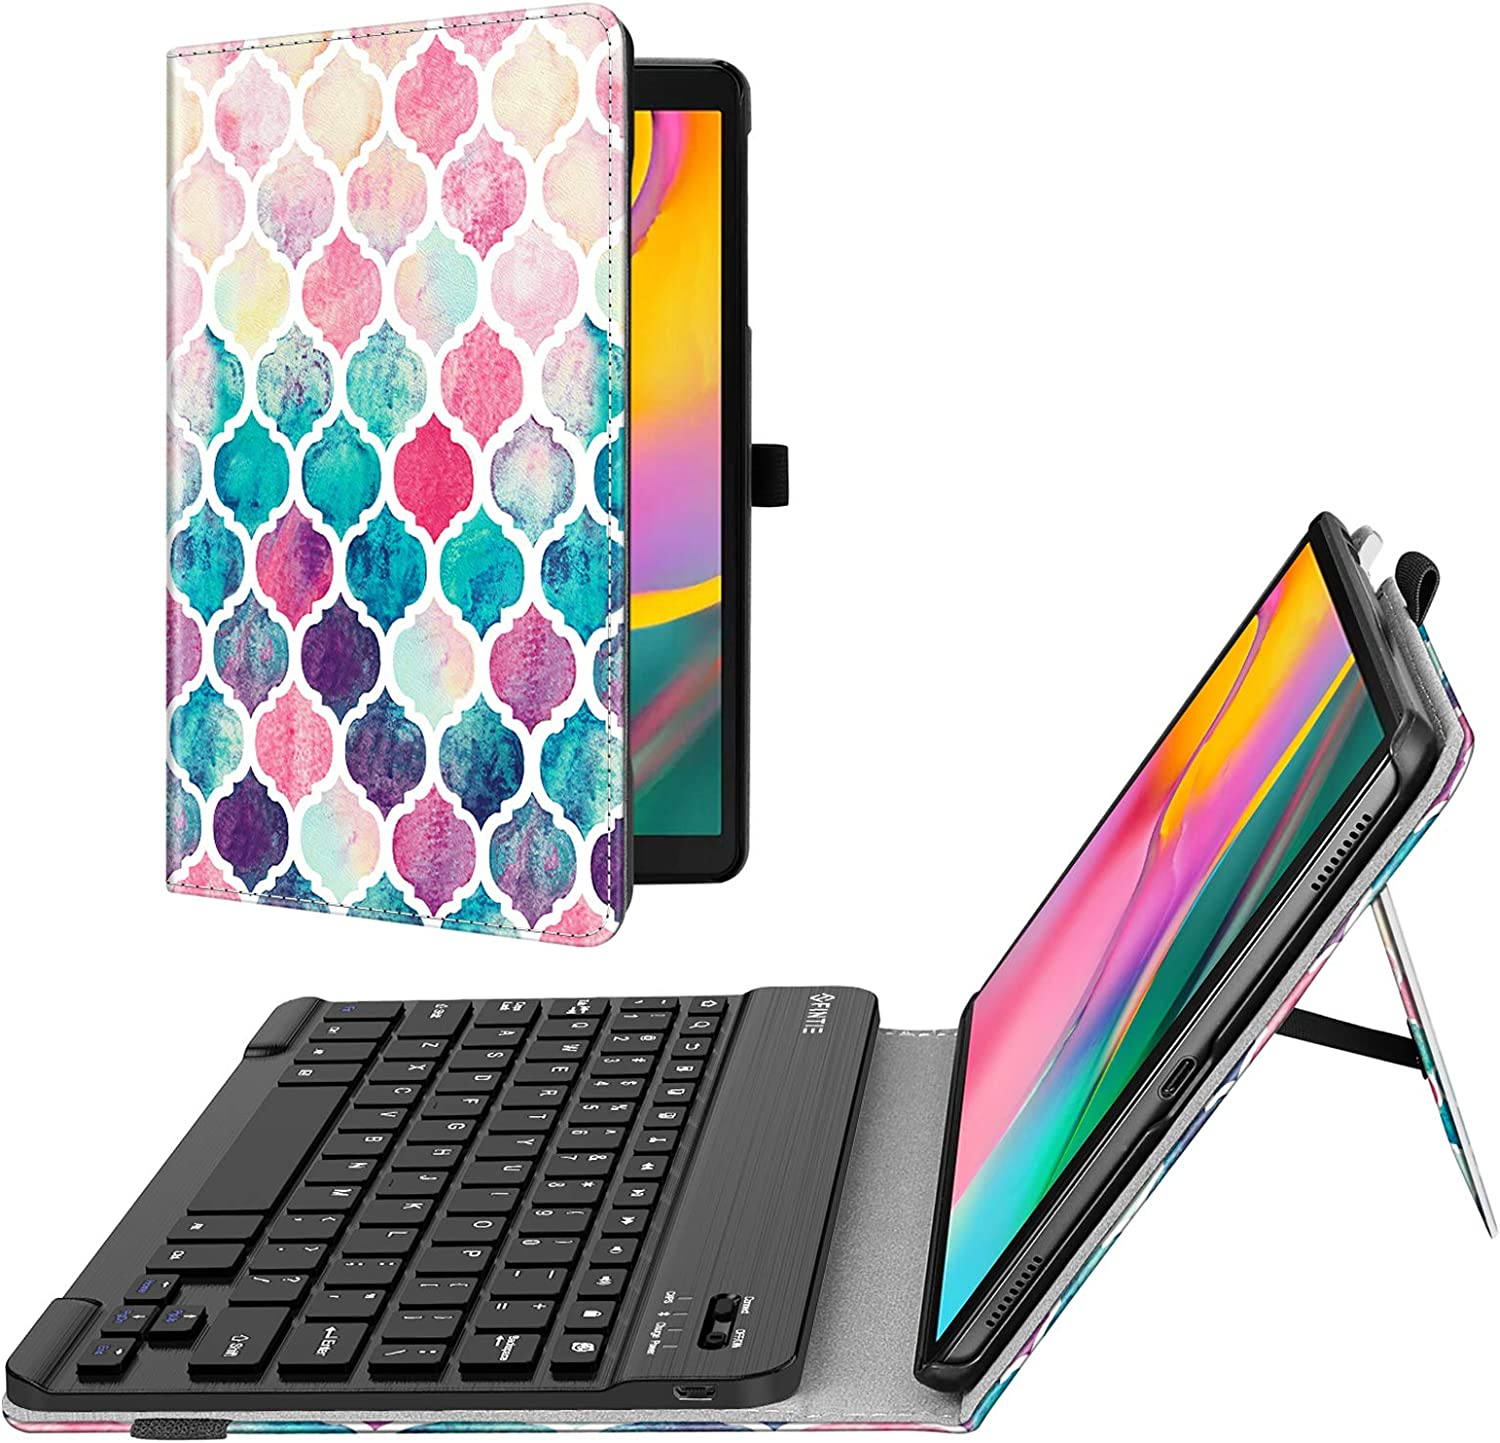 Fintie Folio Keyboard Case for Samsung Galaxy Tab A 10.1 2019 Model SM-T510/T515/T517, Premium PU Leather Stand Cover with Removable Wireless Bluetooth Keyboard,Moroccan Love